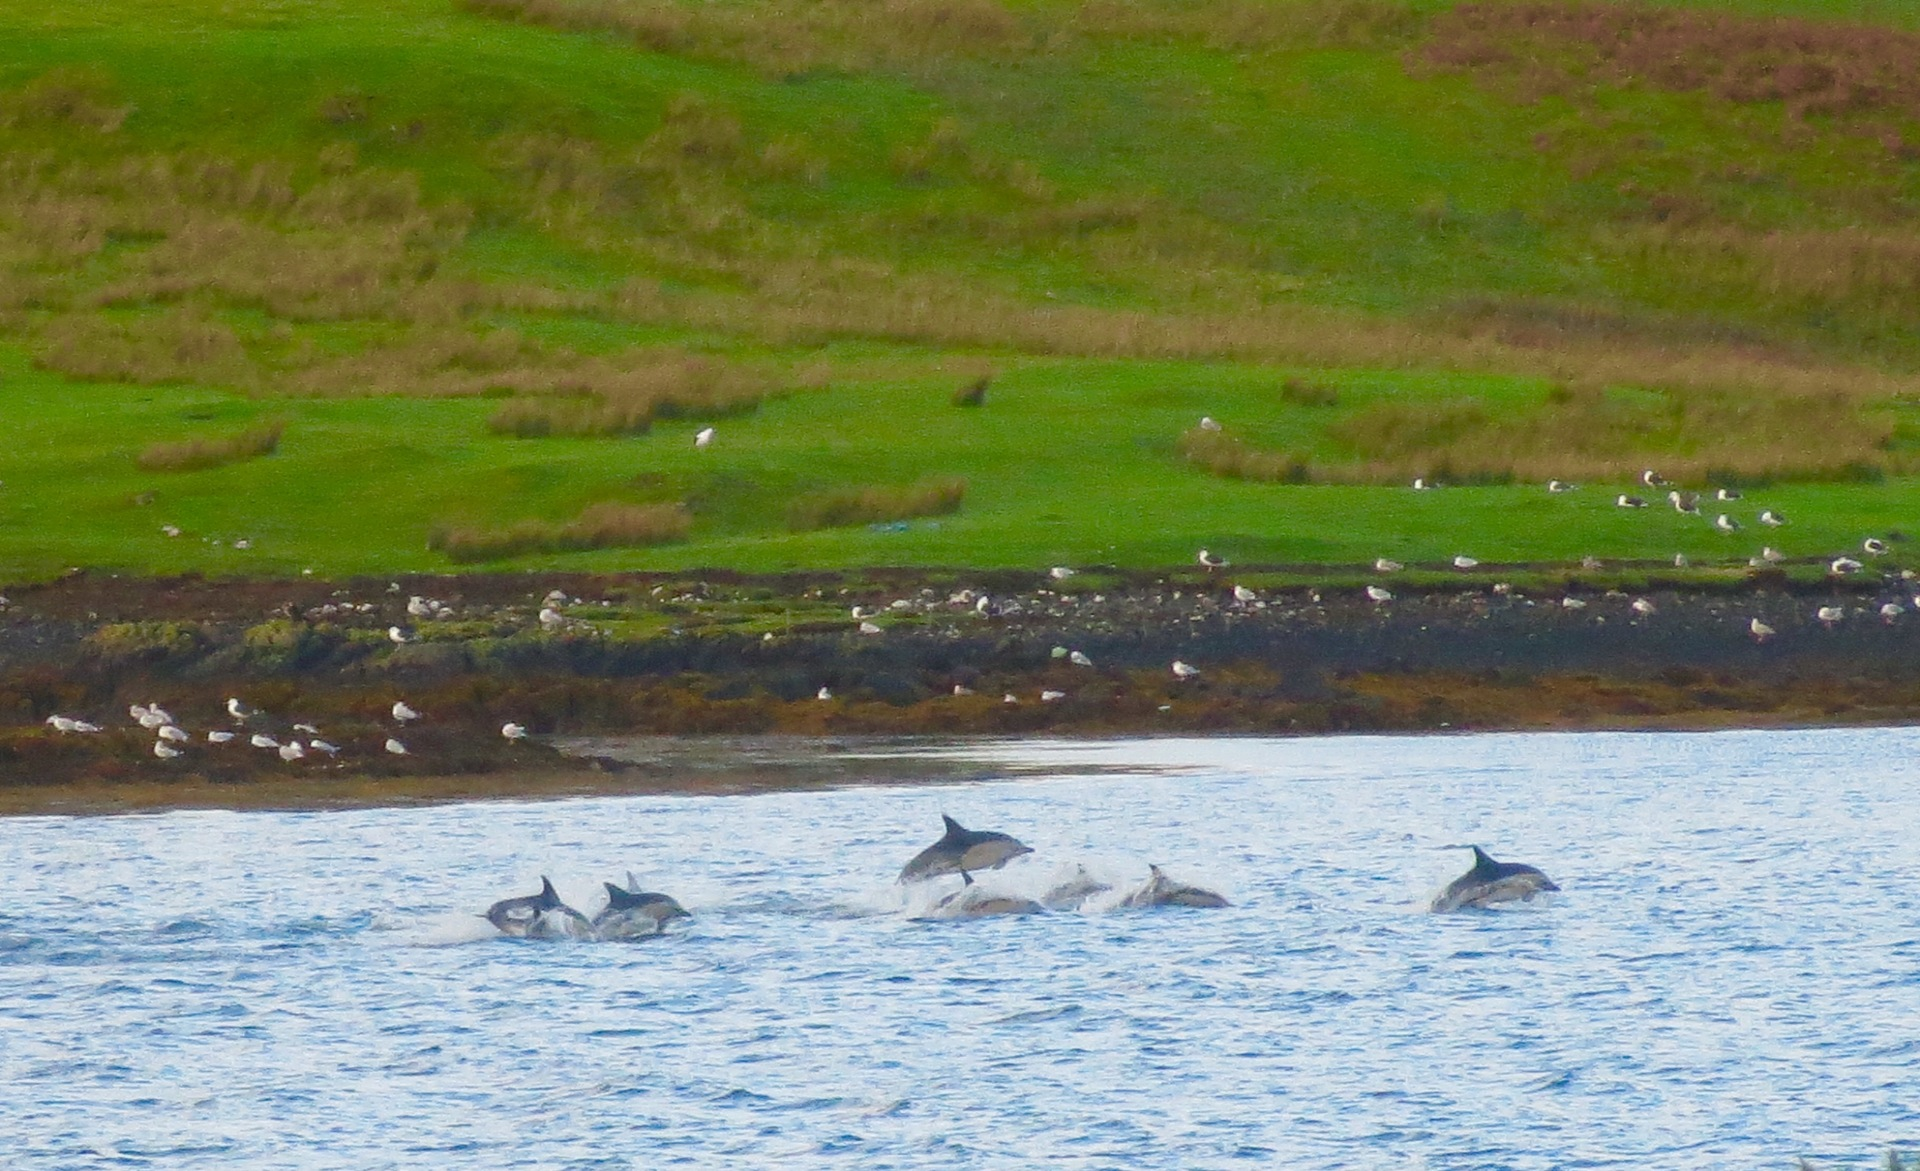 Dolphins in Loch Dunvegan